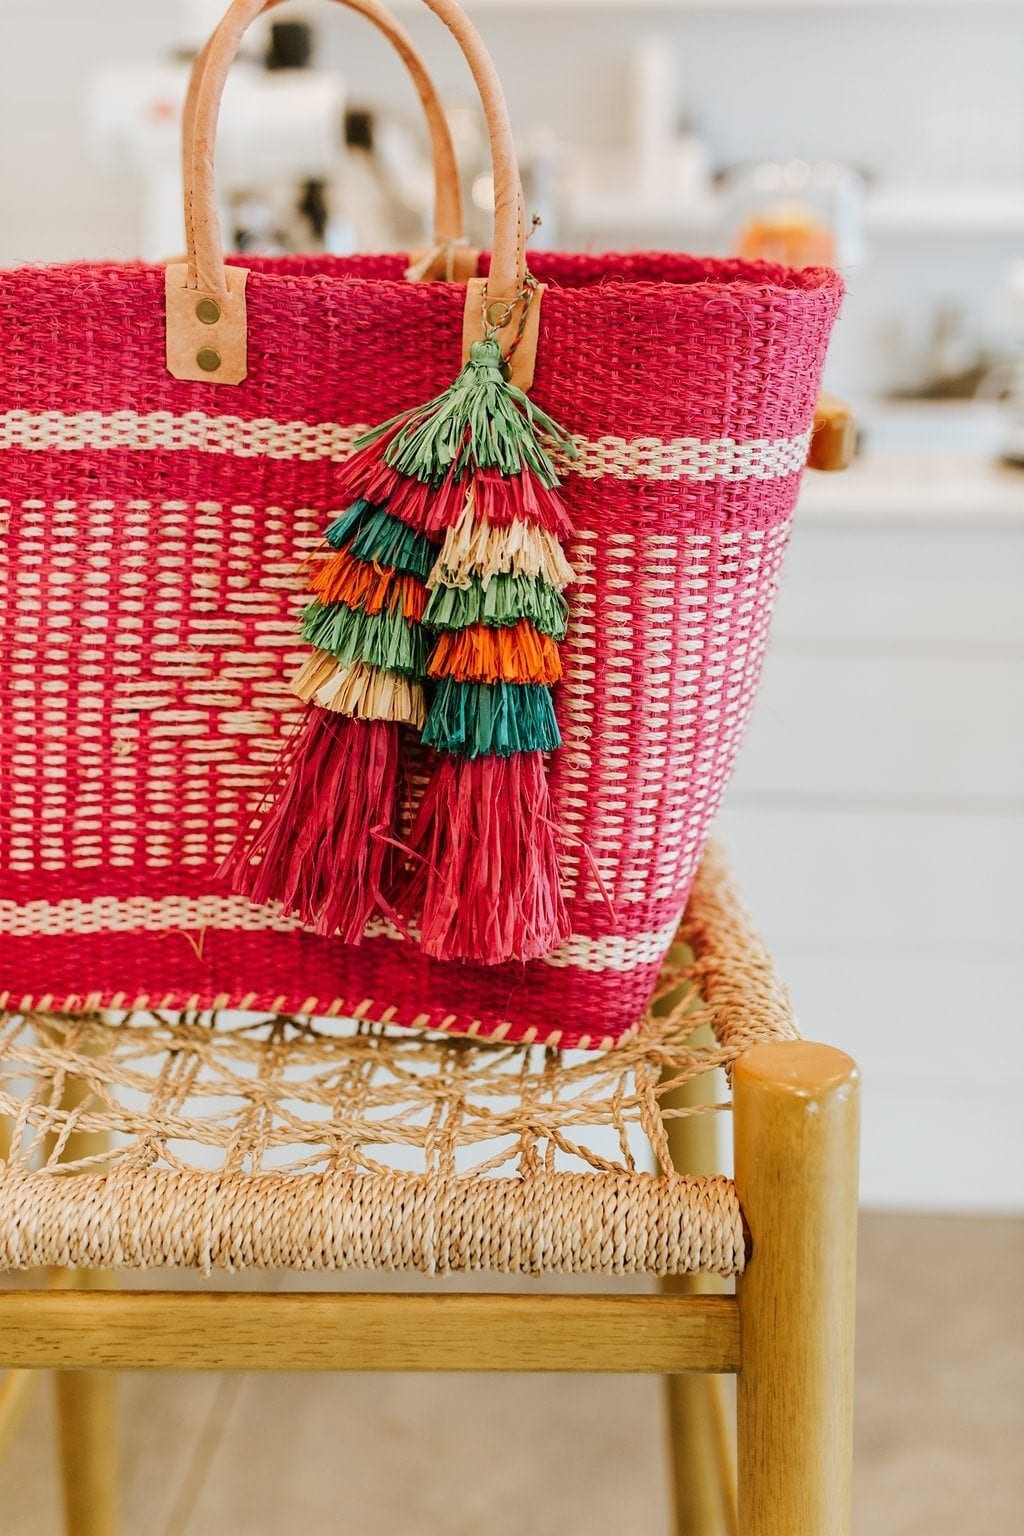 Pink straw tote bag with straw tassels. Multi color tassels hand from bright pink straw bag.